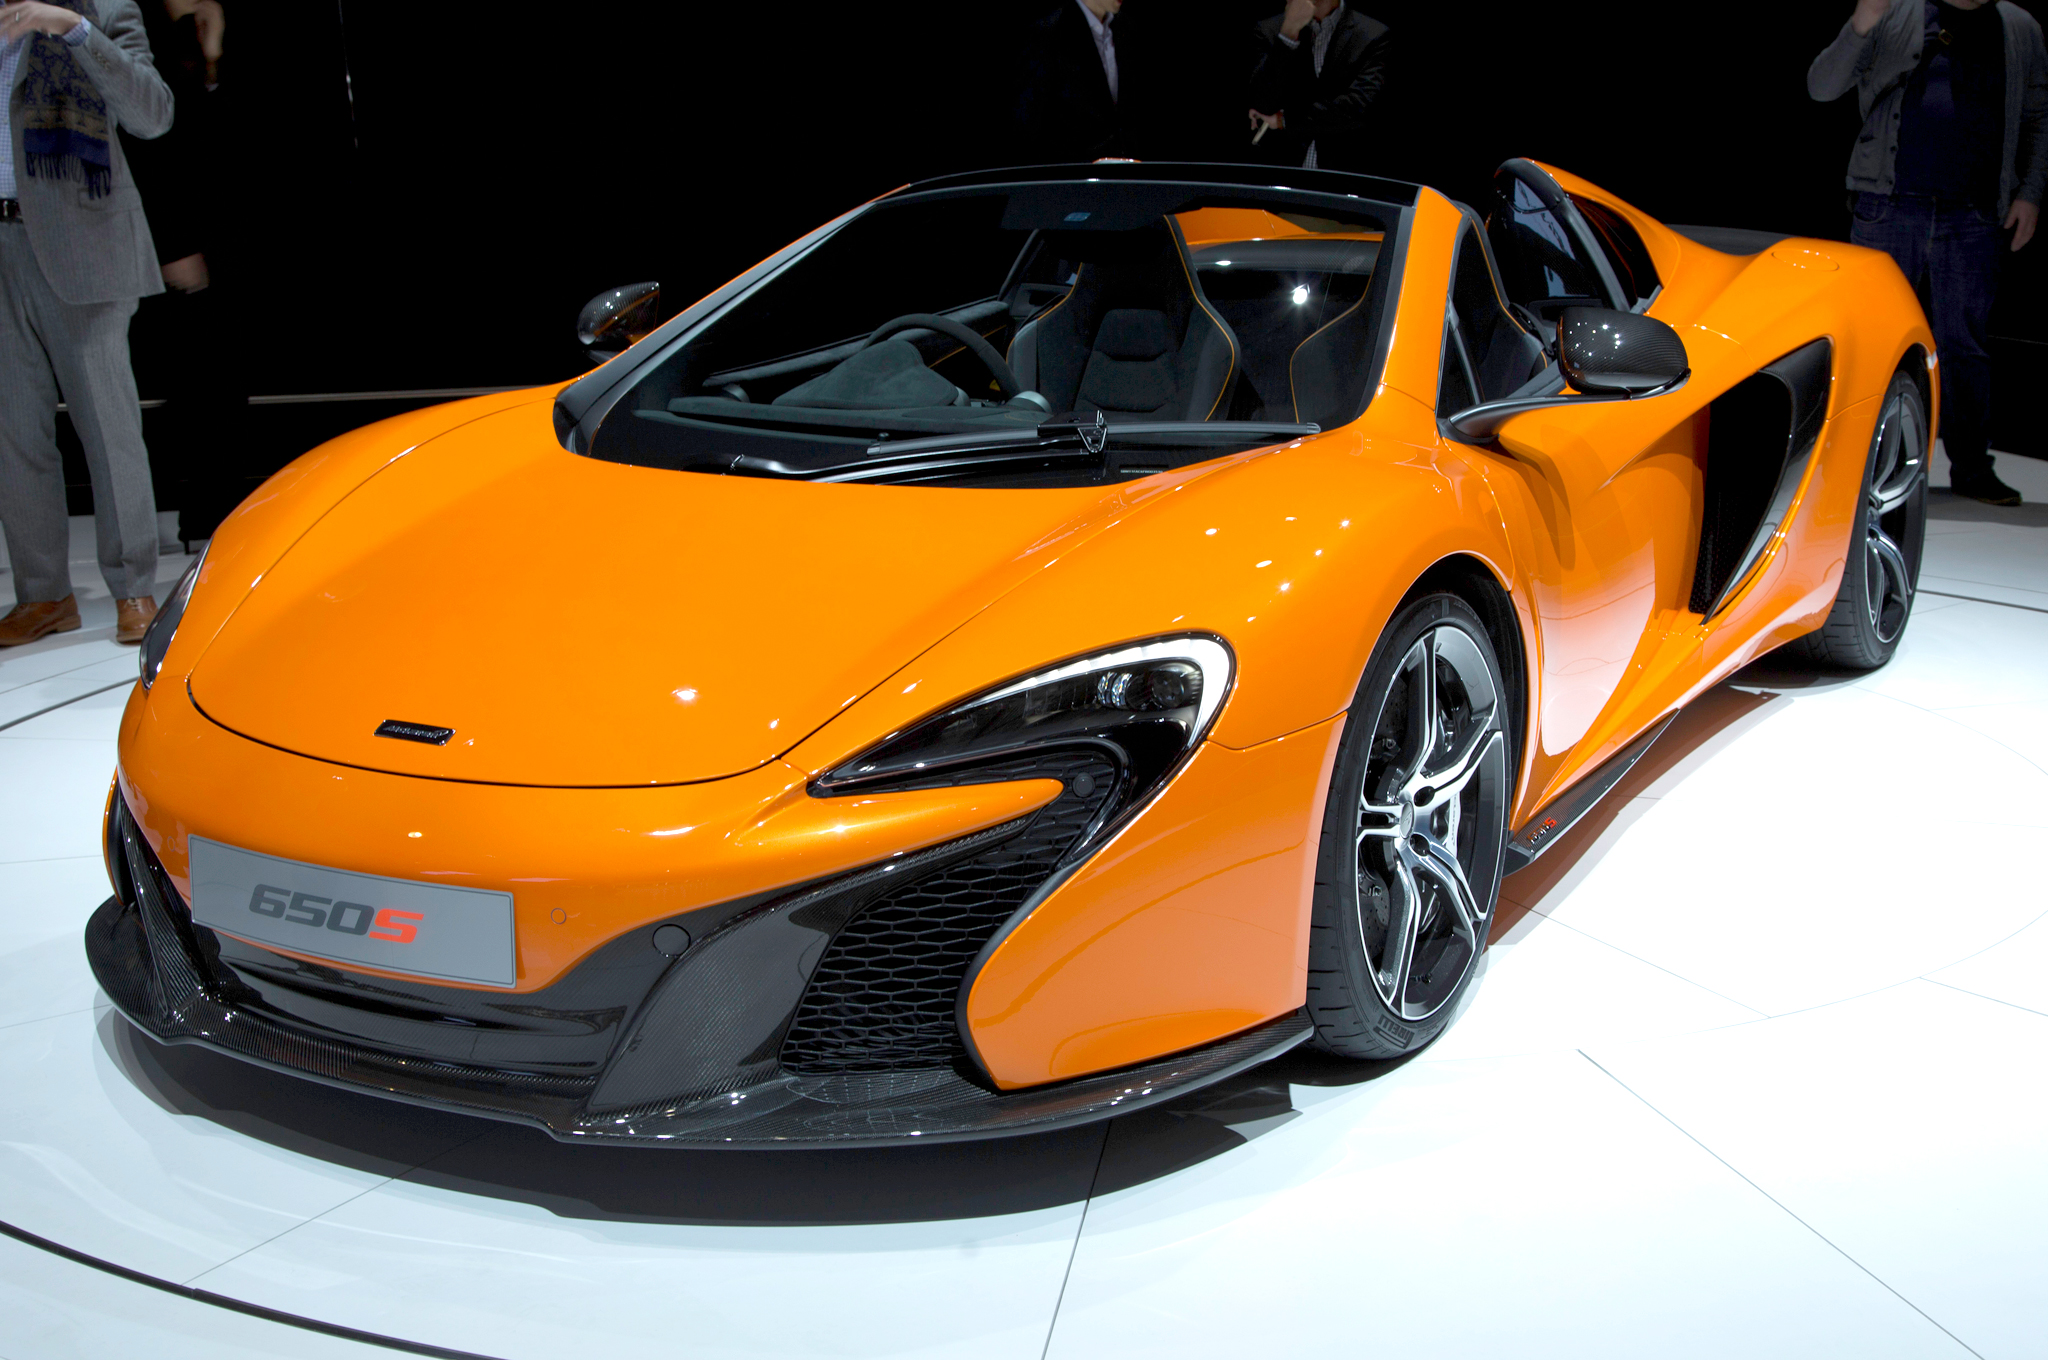 2015 mclaren 650s changes from 12c type #850 | cars performance